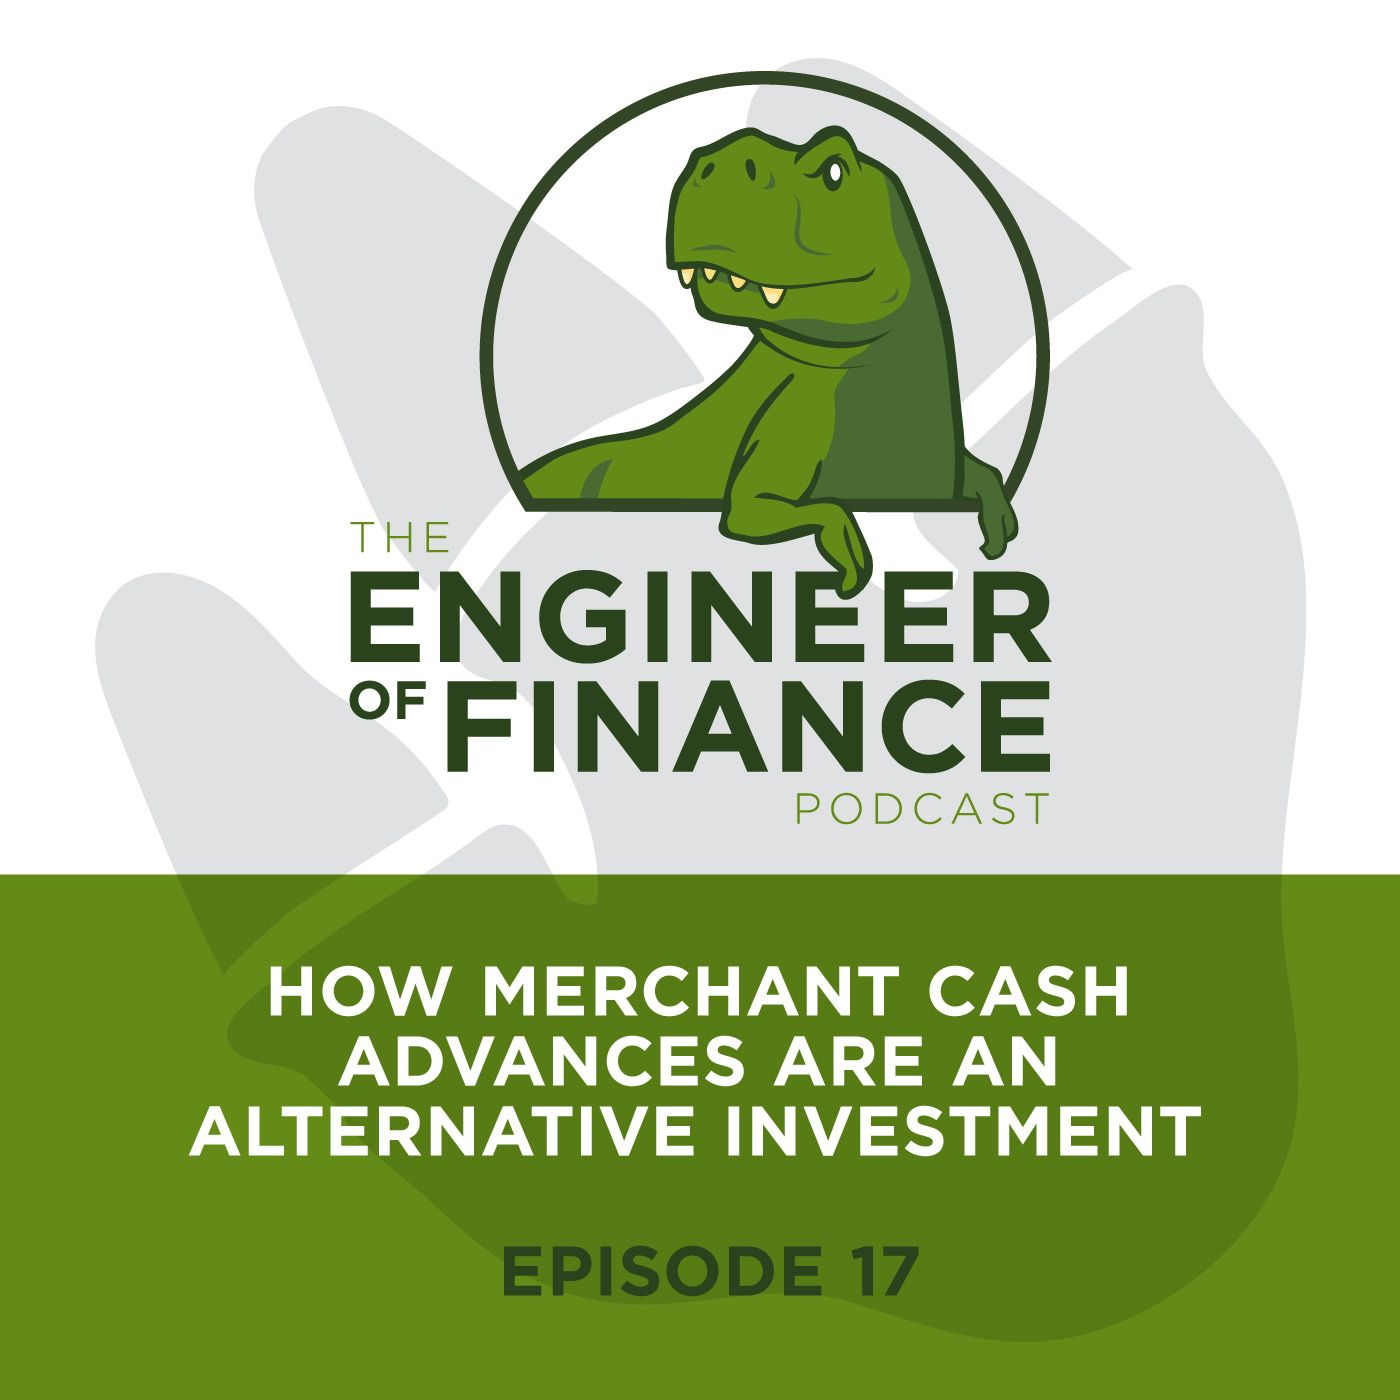 How Merchant Cash Advances Are an Alternative Investment – Episode 17